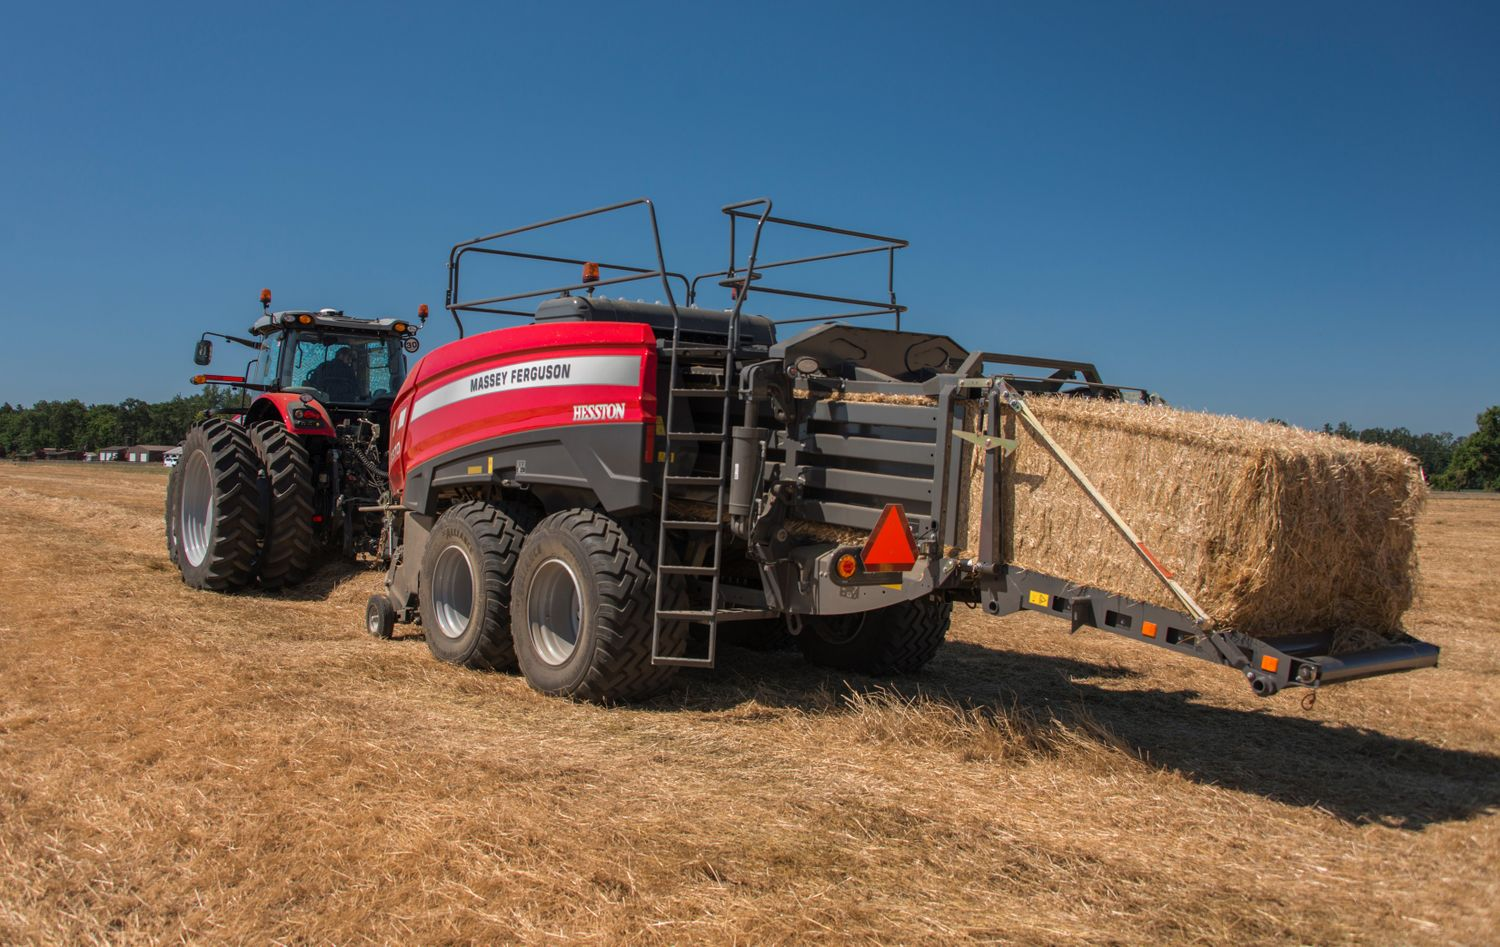 Hesston by Massey Ferguson to Debut 2370 Ultra High Density Large Square Baler at World Ag Expo 2018